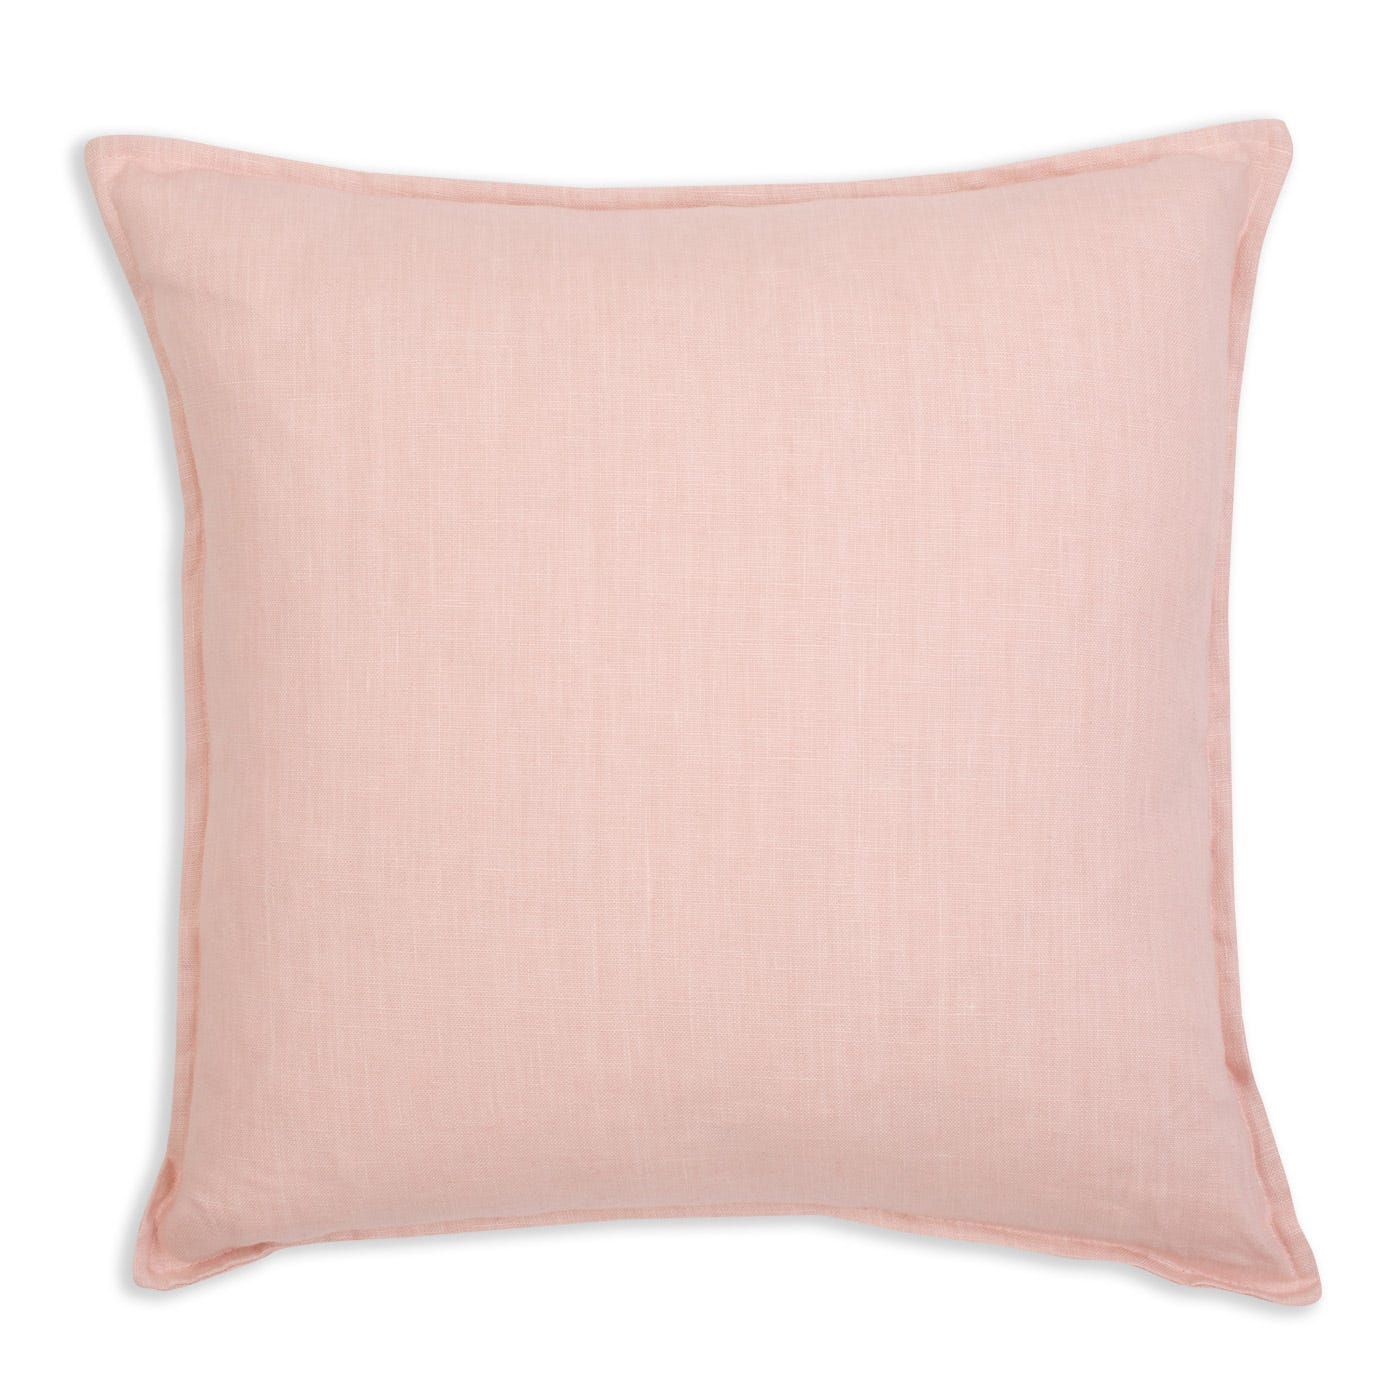 Designer Cushions Luxury Printed & Scatter Cushions